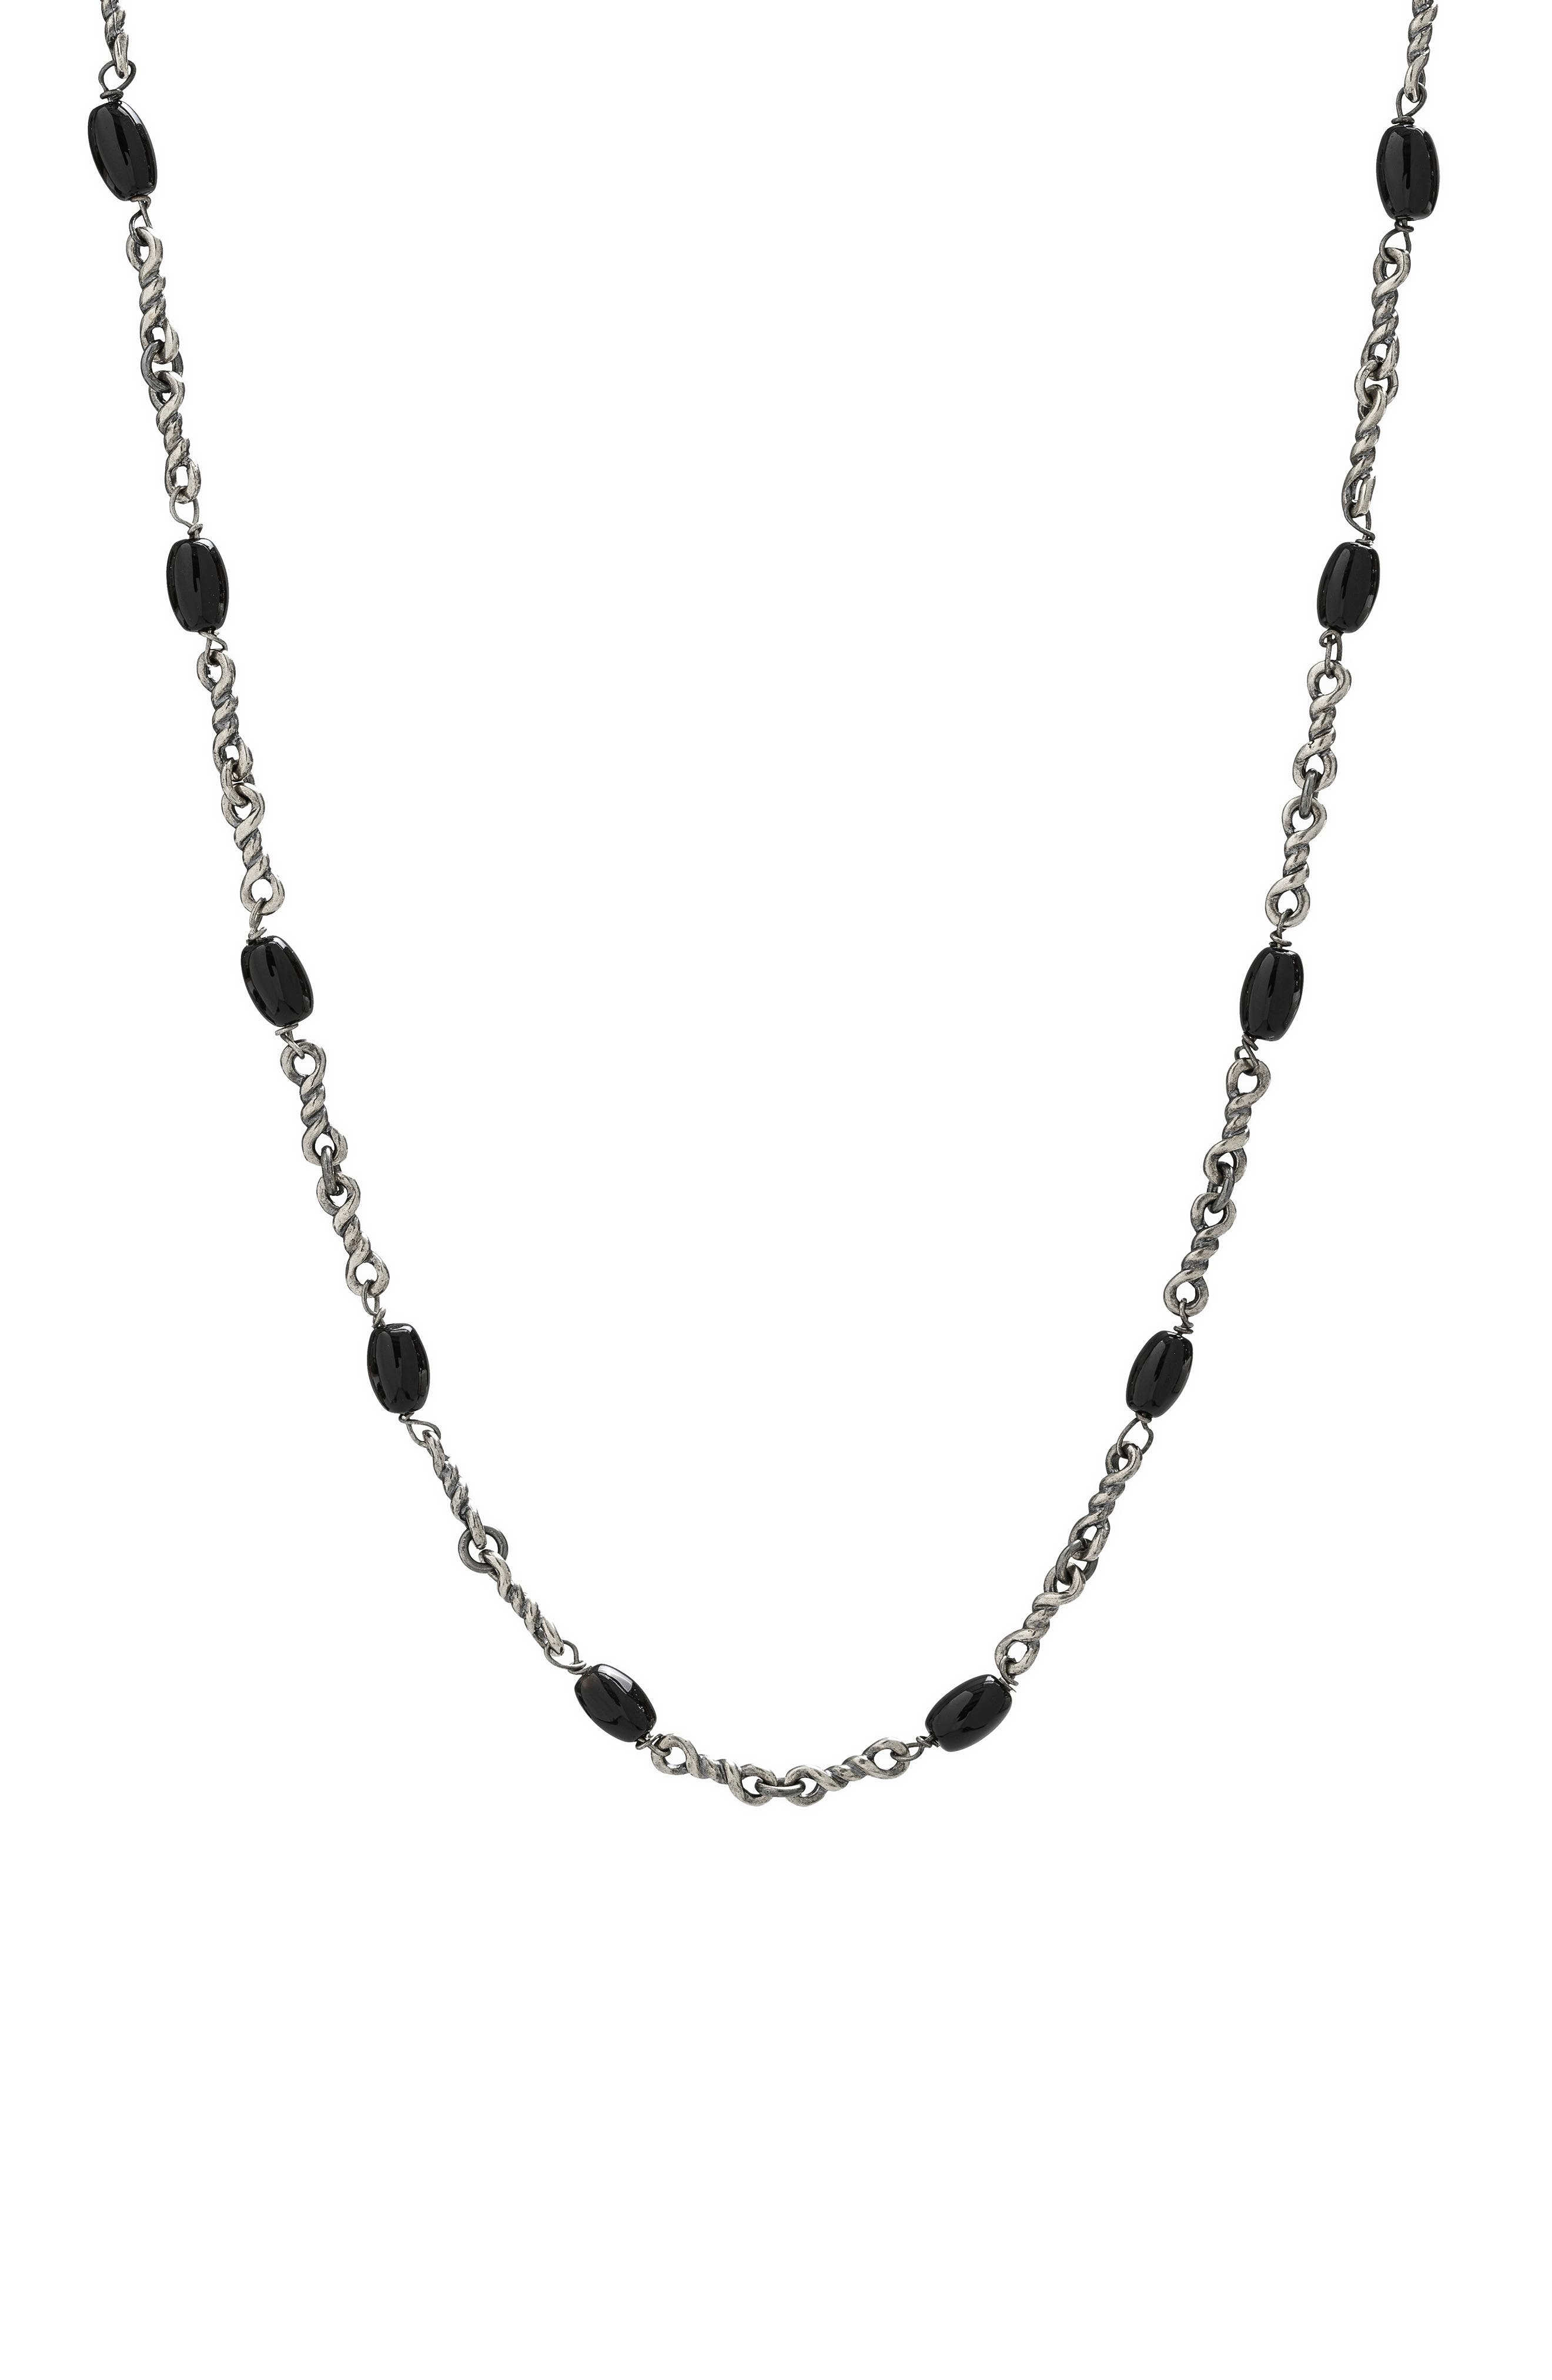 Men's Black Onyx Twisted Cable Chain Necklace